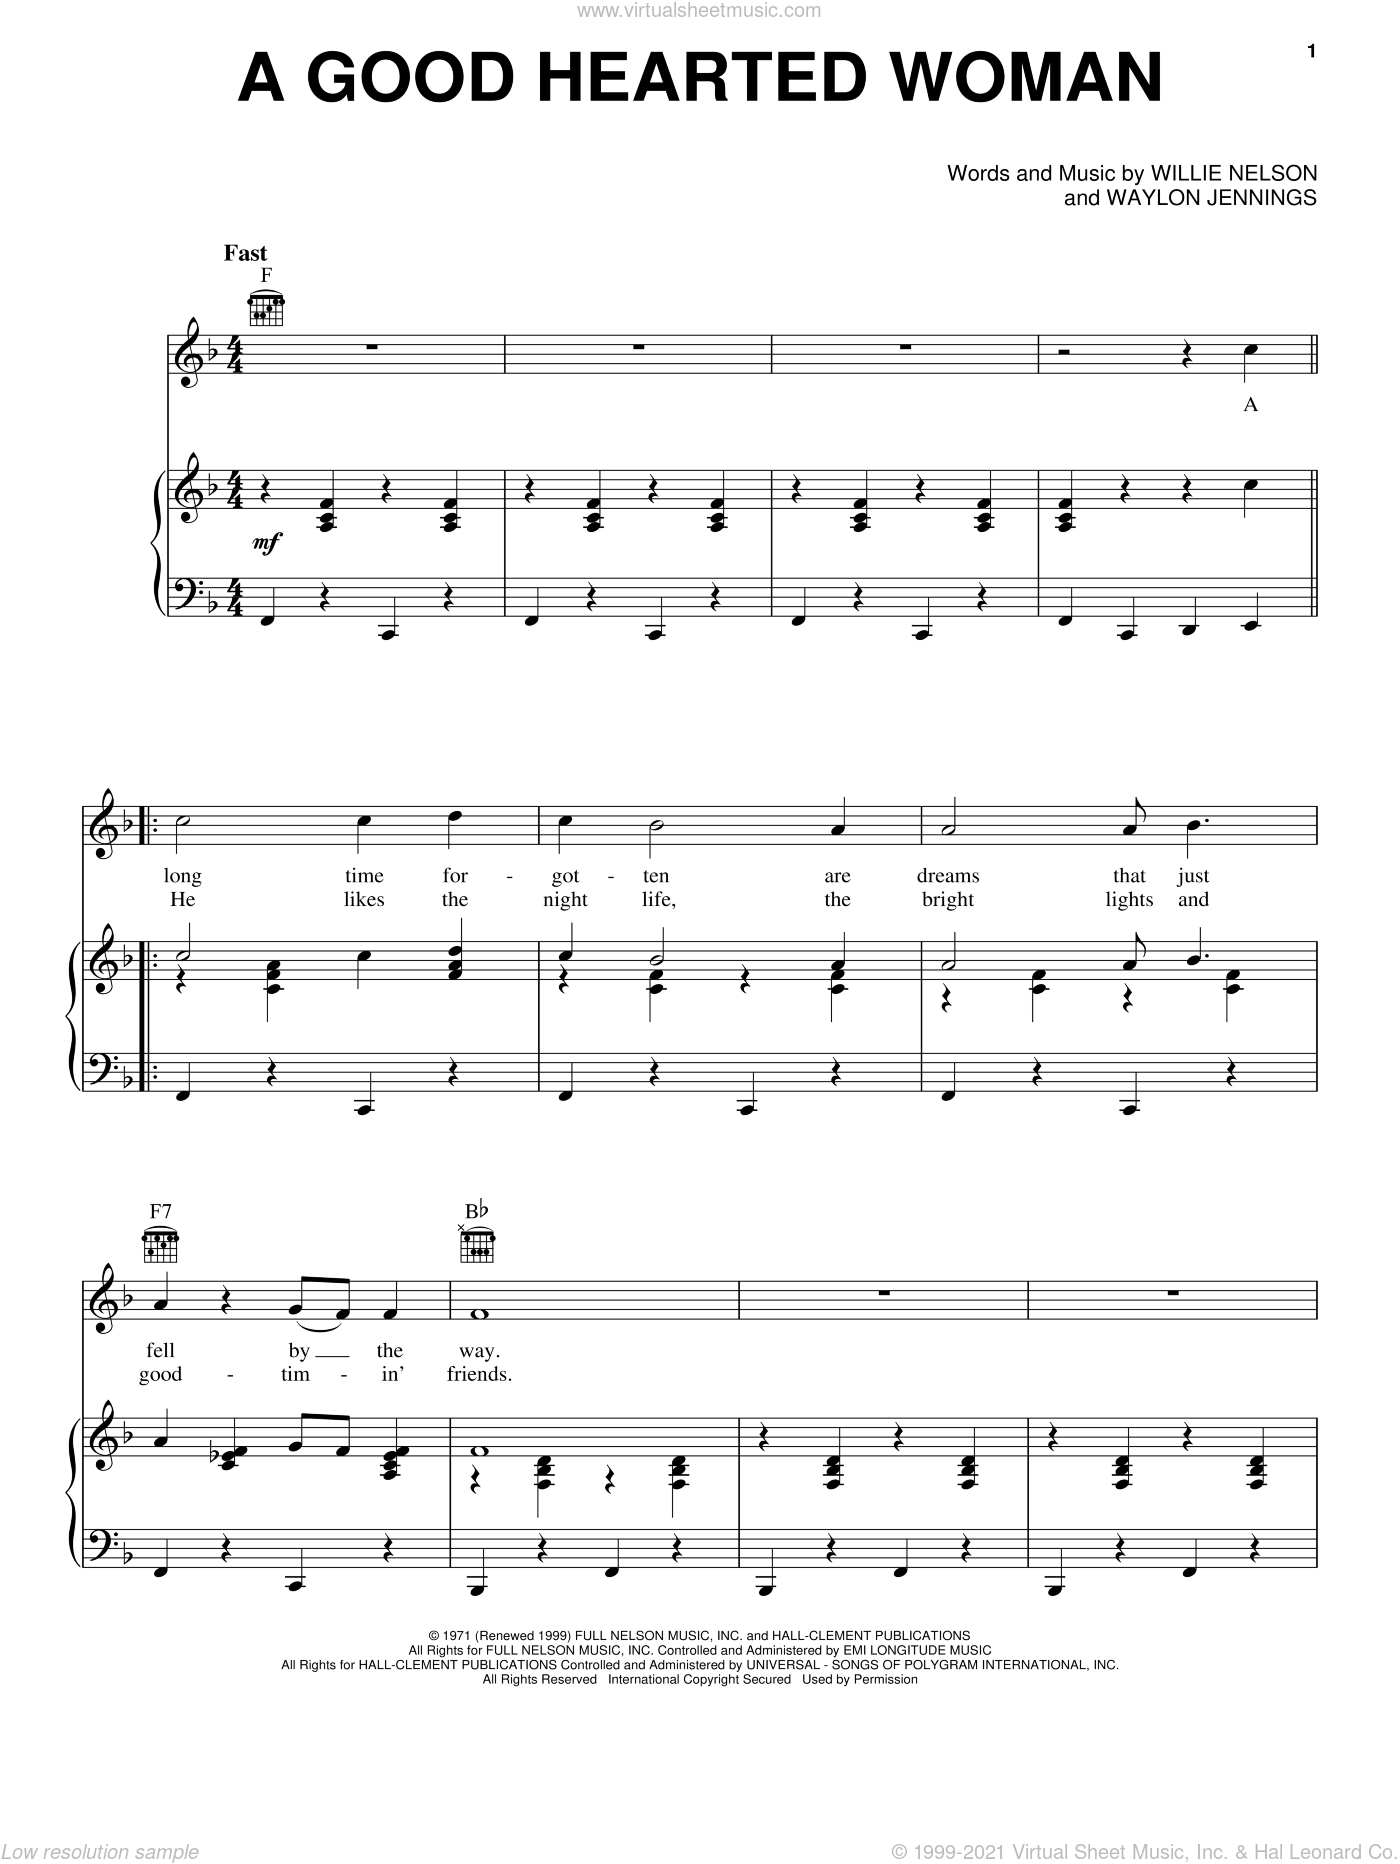 A Good Hearted Woman sheet music for voice, piano or guitar by Willie Nelson and Waylon Jennings, intermediate